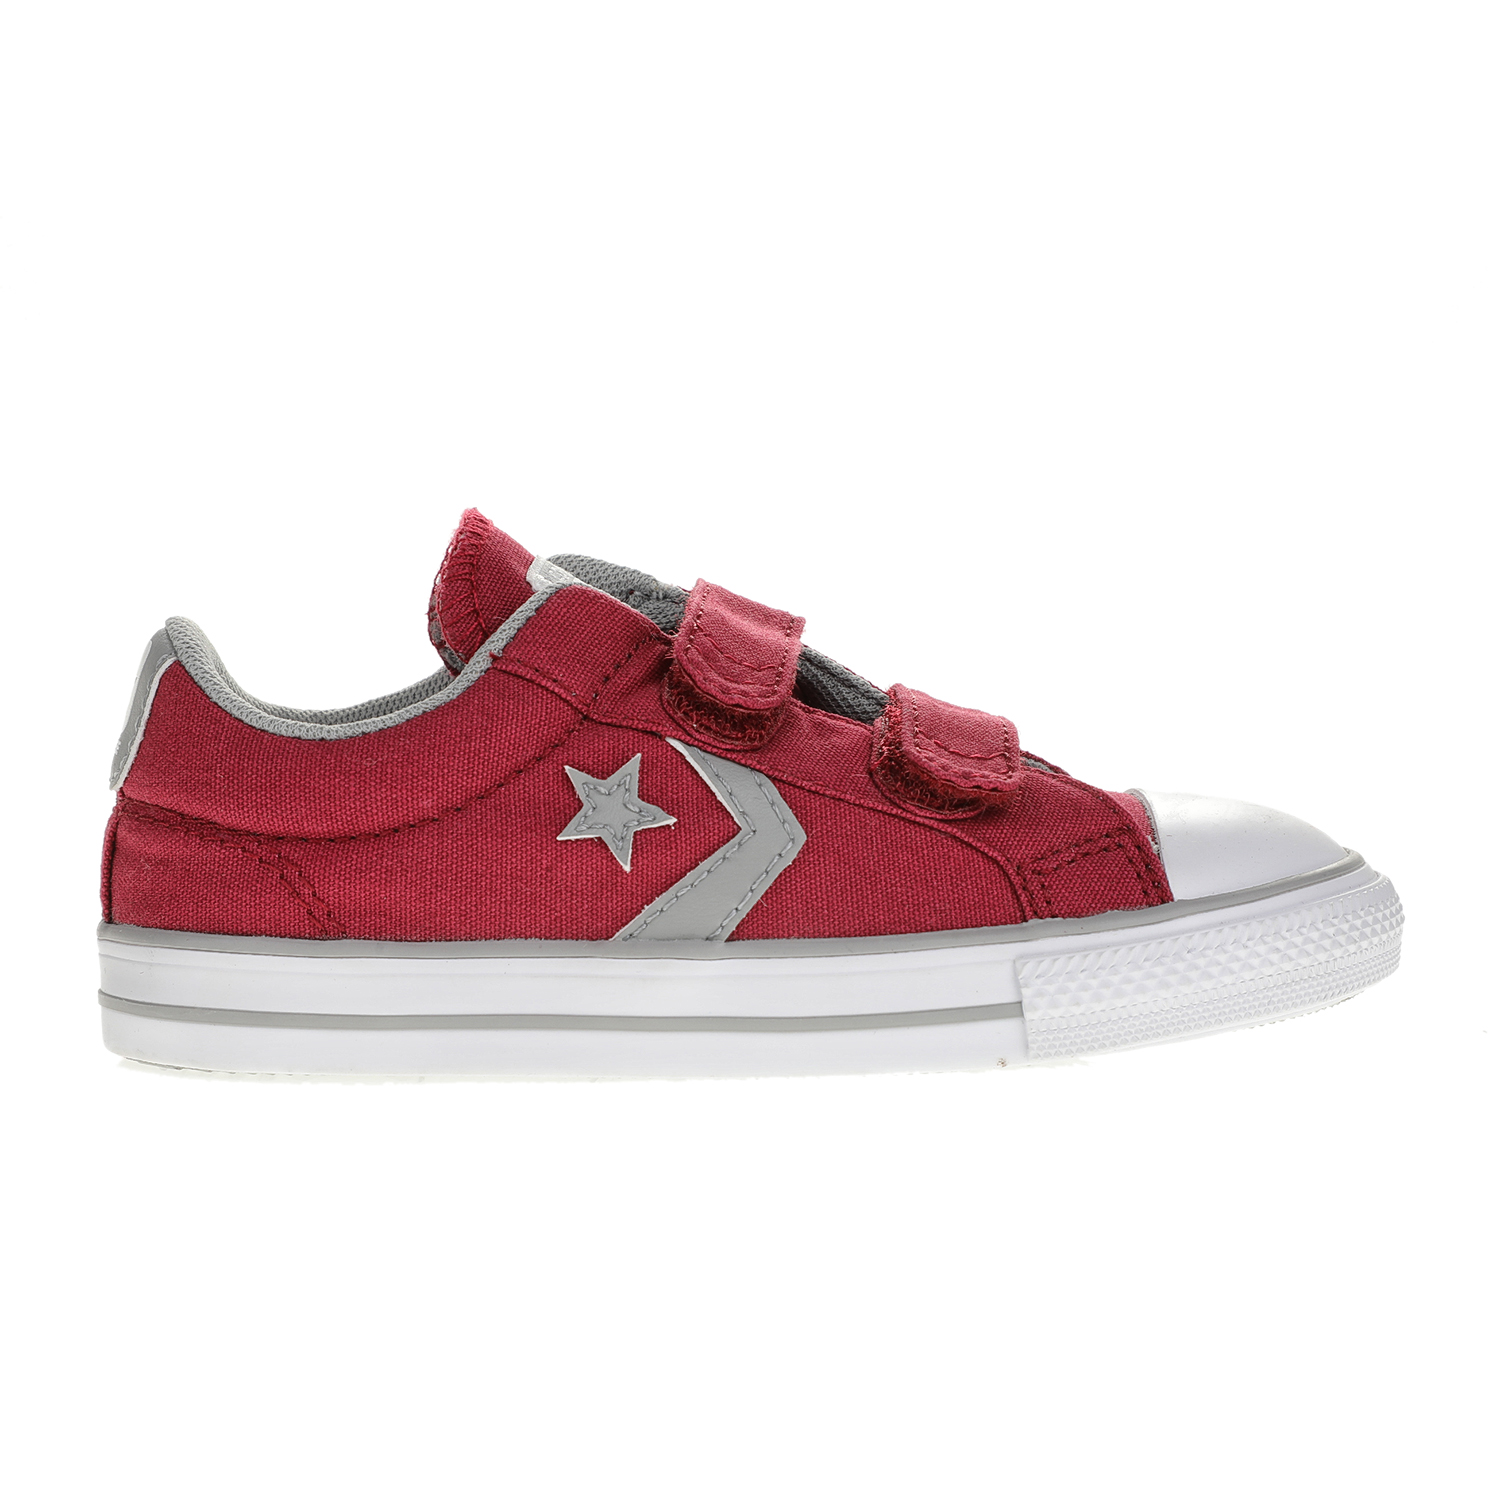 CONVERSE – Βρεφικά παπούτσια CONVERSE Star Player 2V Ox κόκκινα